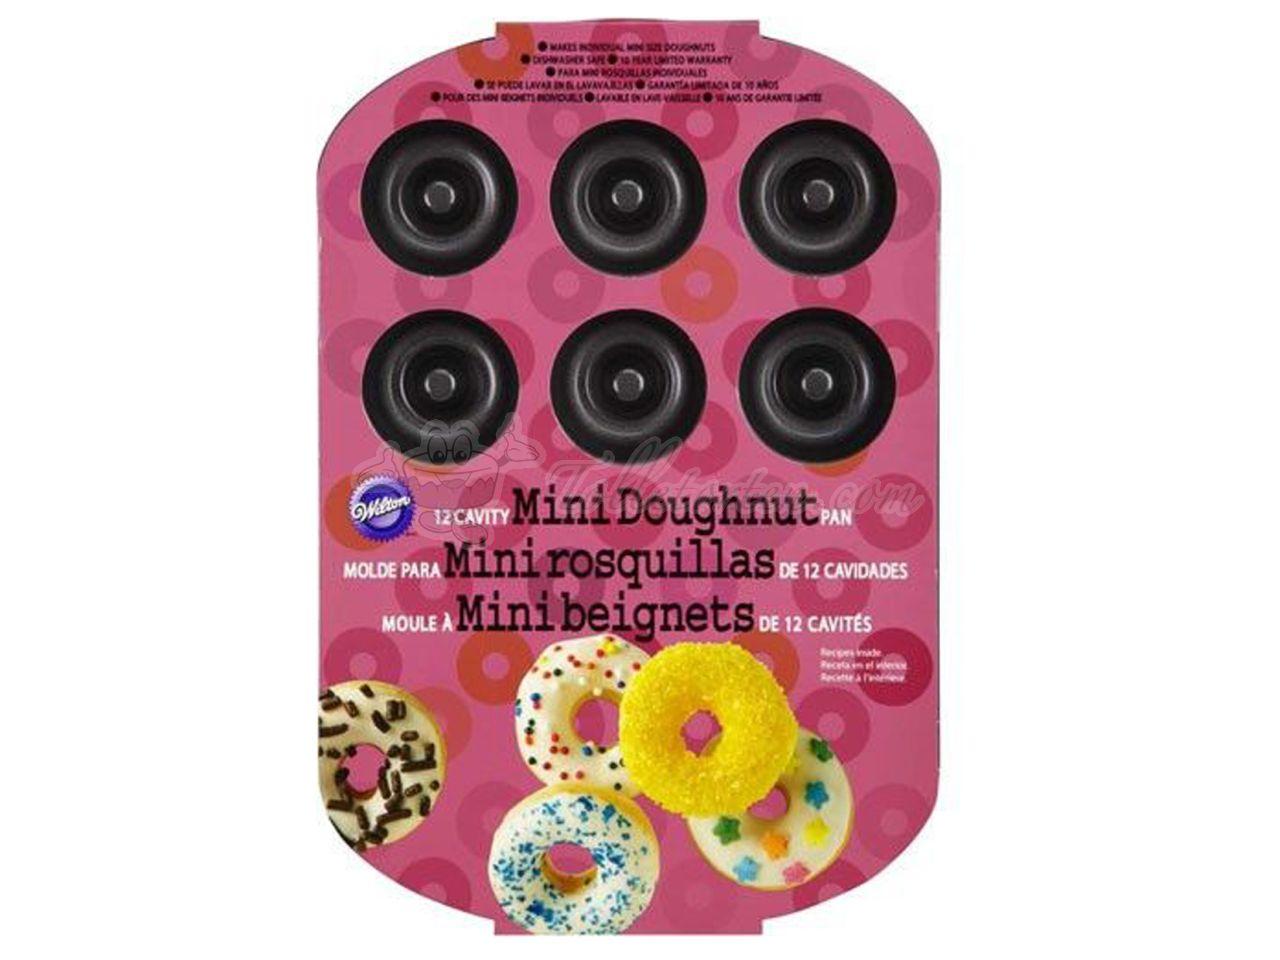 Wilton 12-Cavity Mini Donut Pan